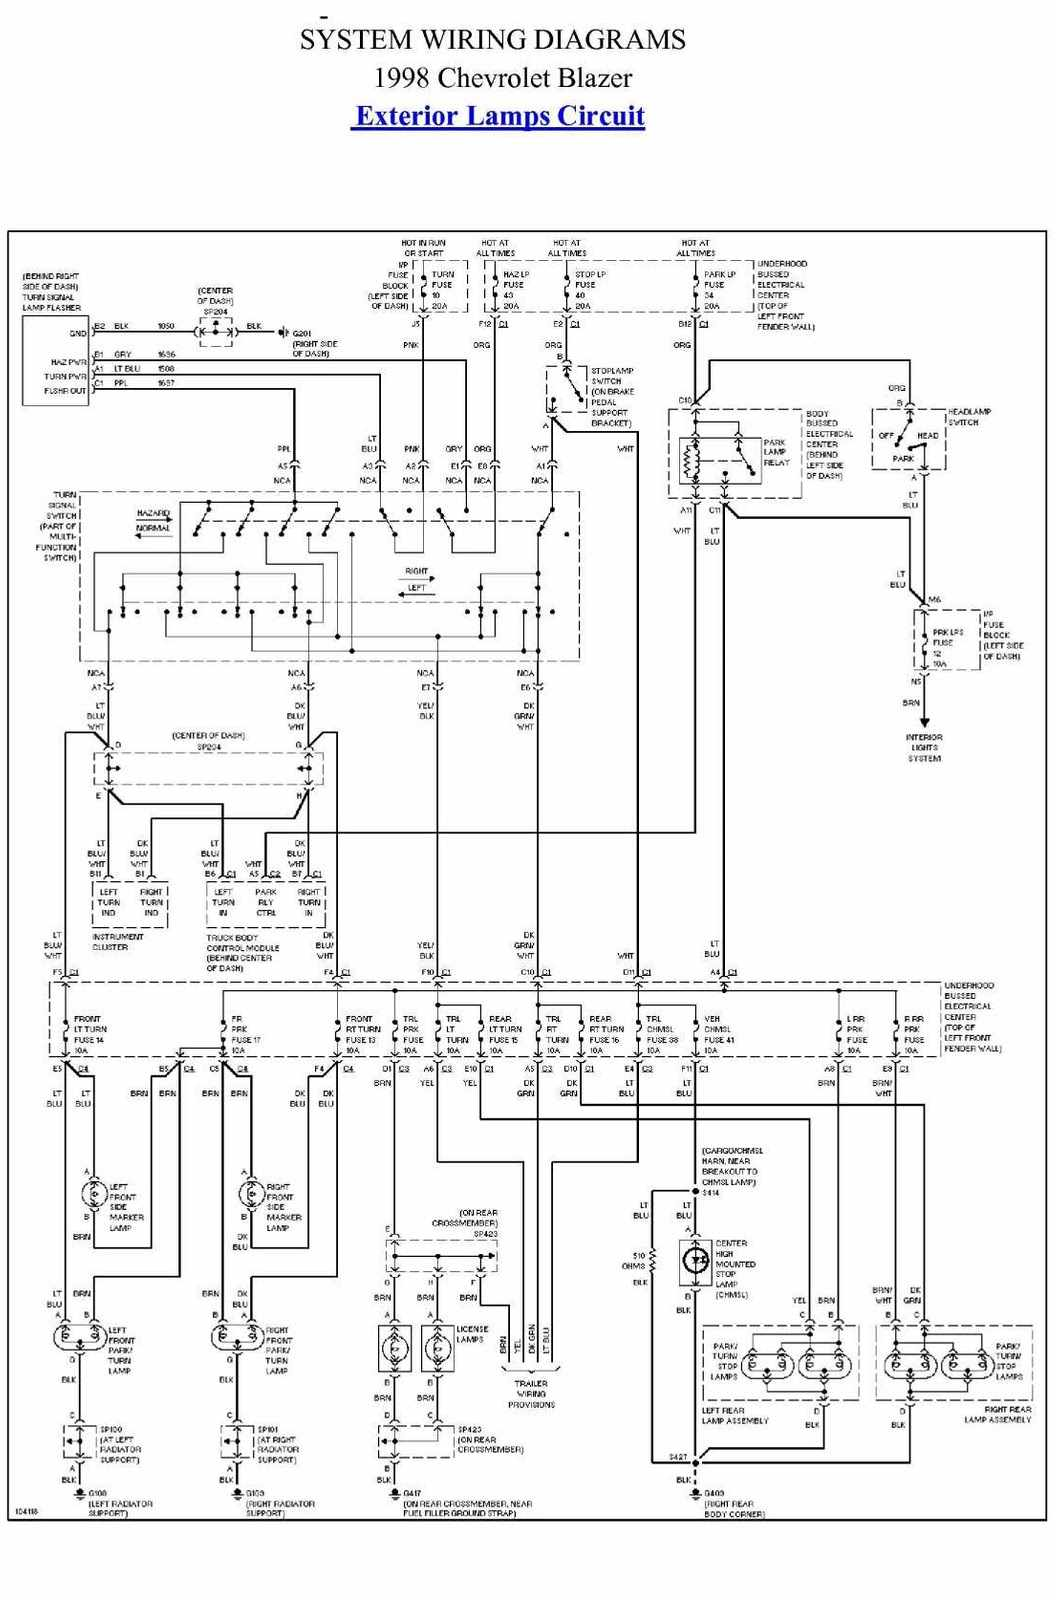 exterior lamp circuit diagram of 1998 chevrolet blazer